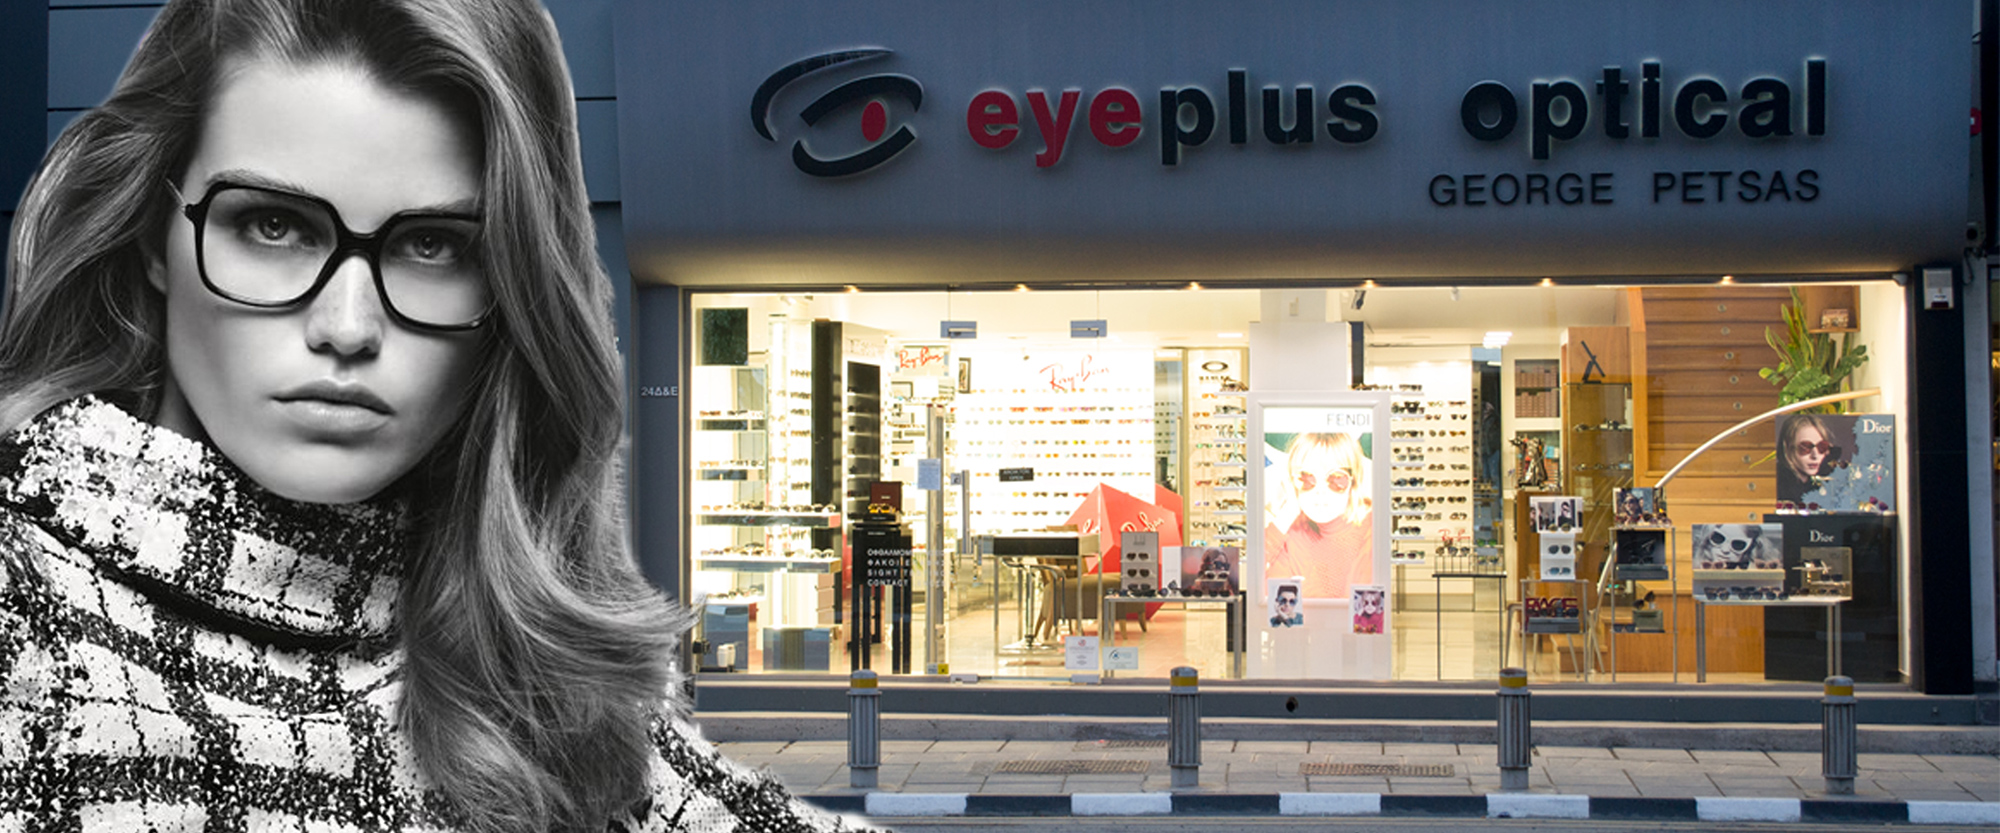 EYE PLUS OPTICAL